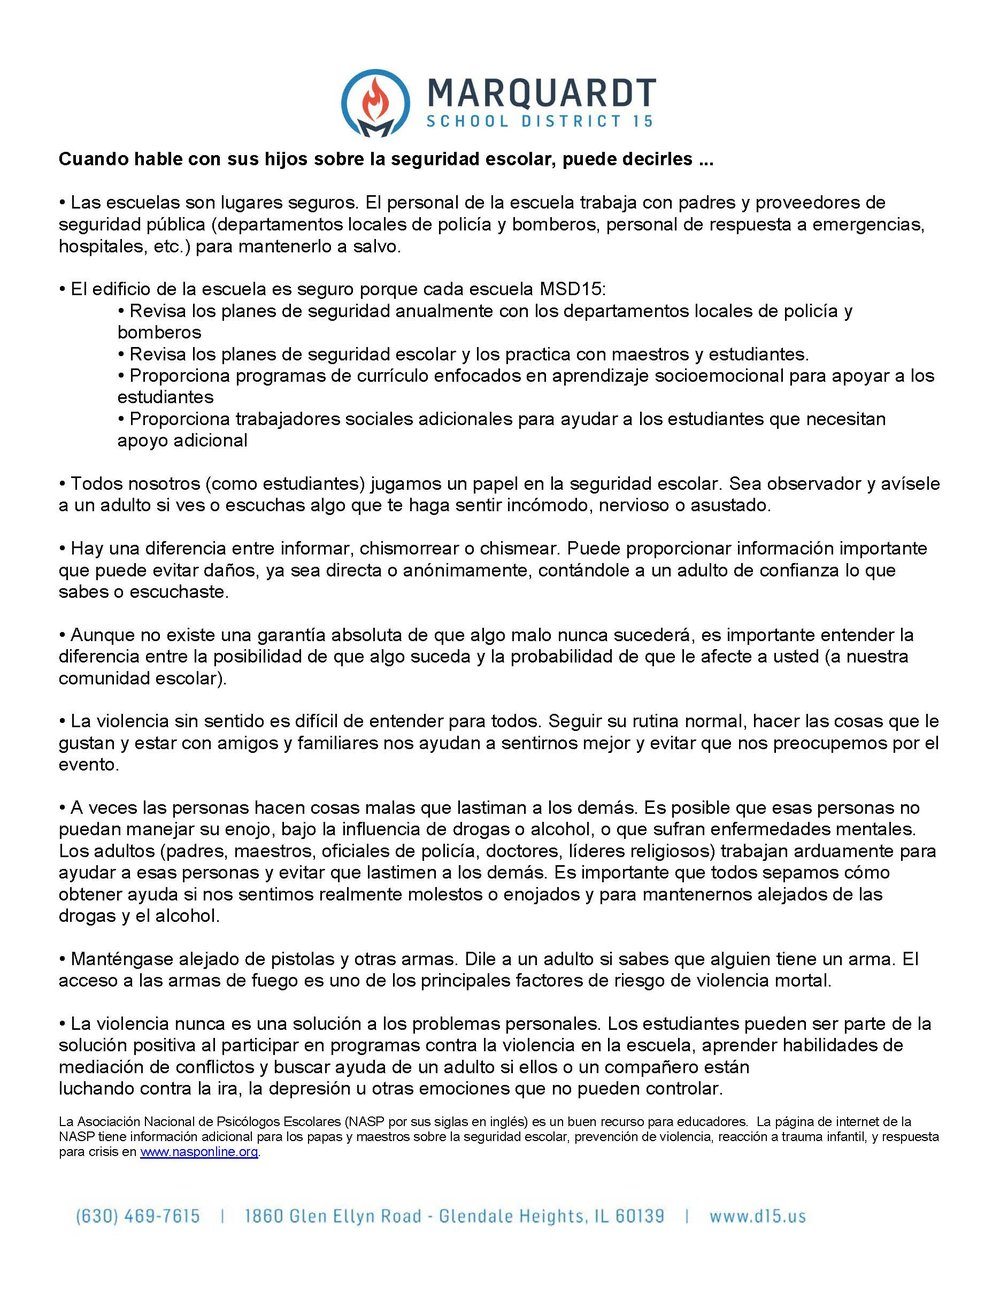 MSD15 Parent Letter_March 14 Day of Action_Spanish_Page_2.jpg